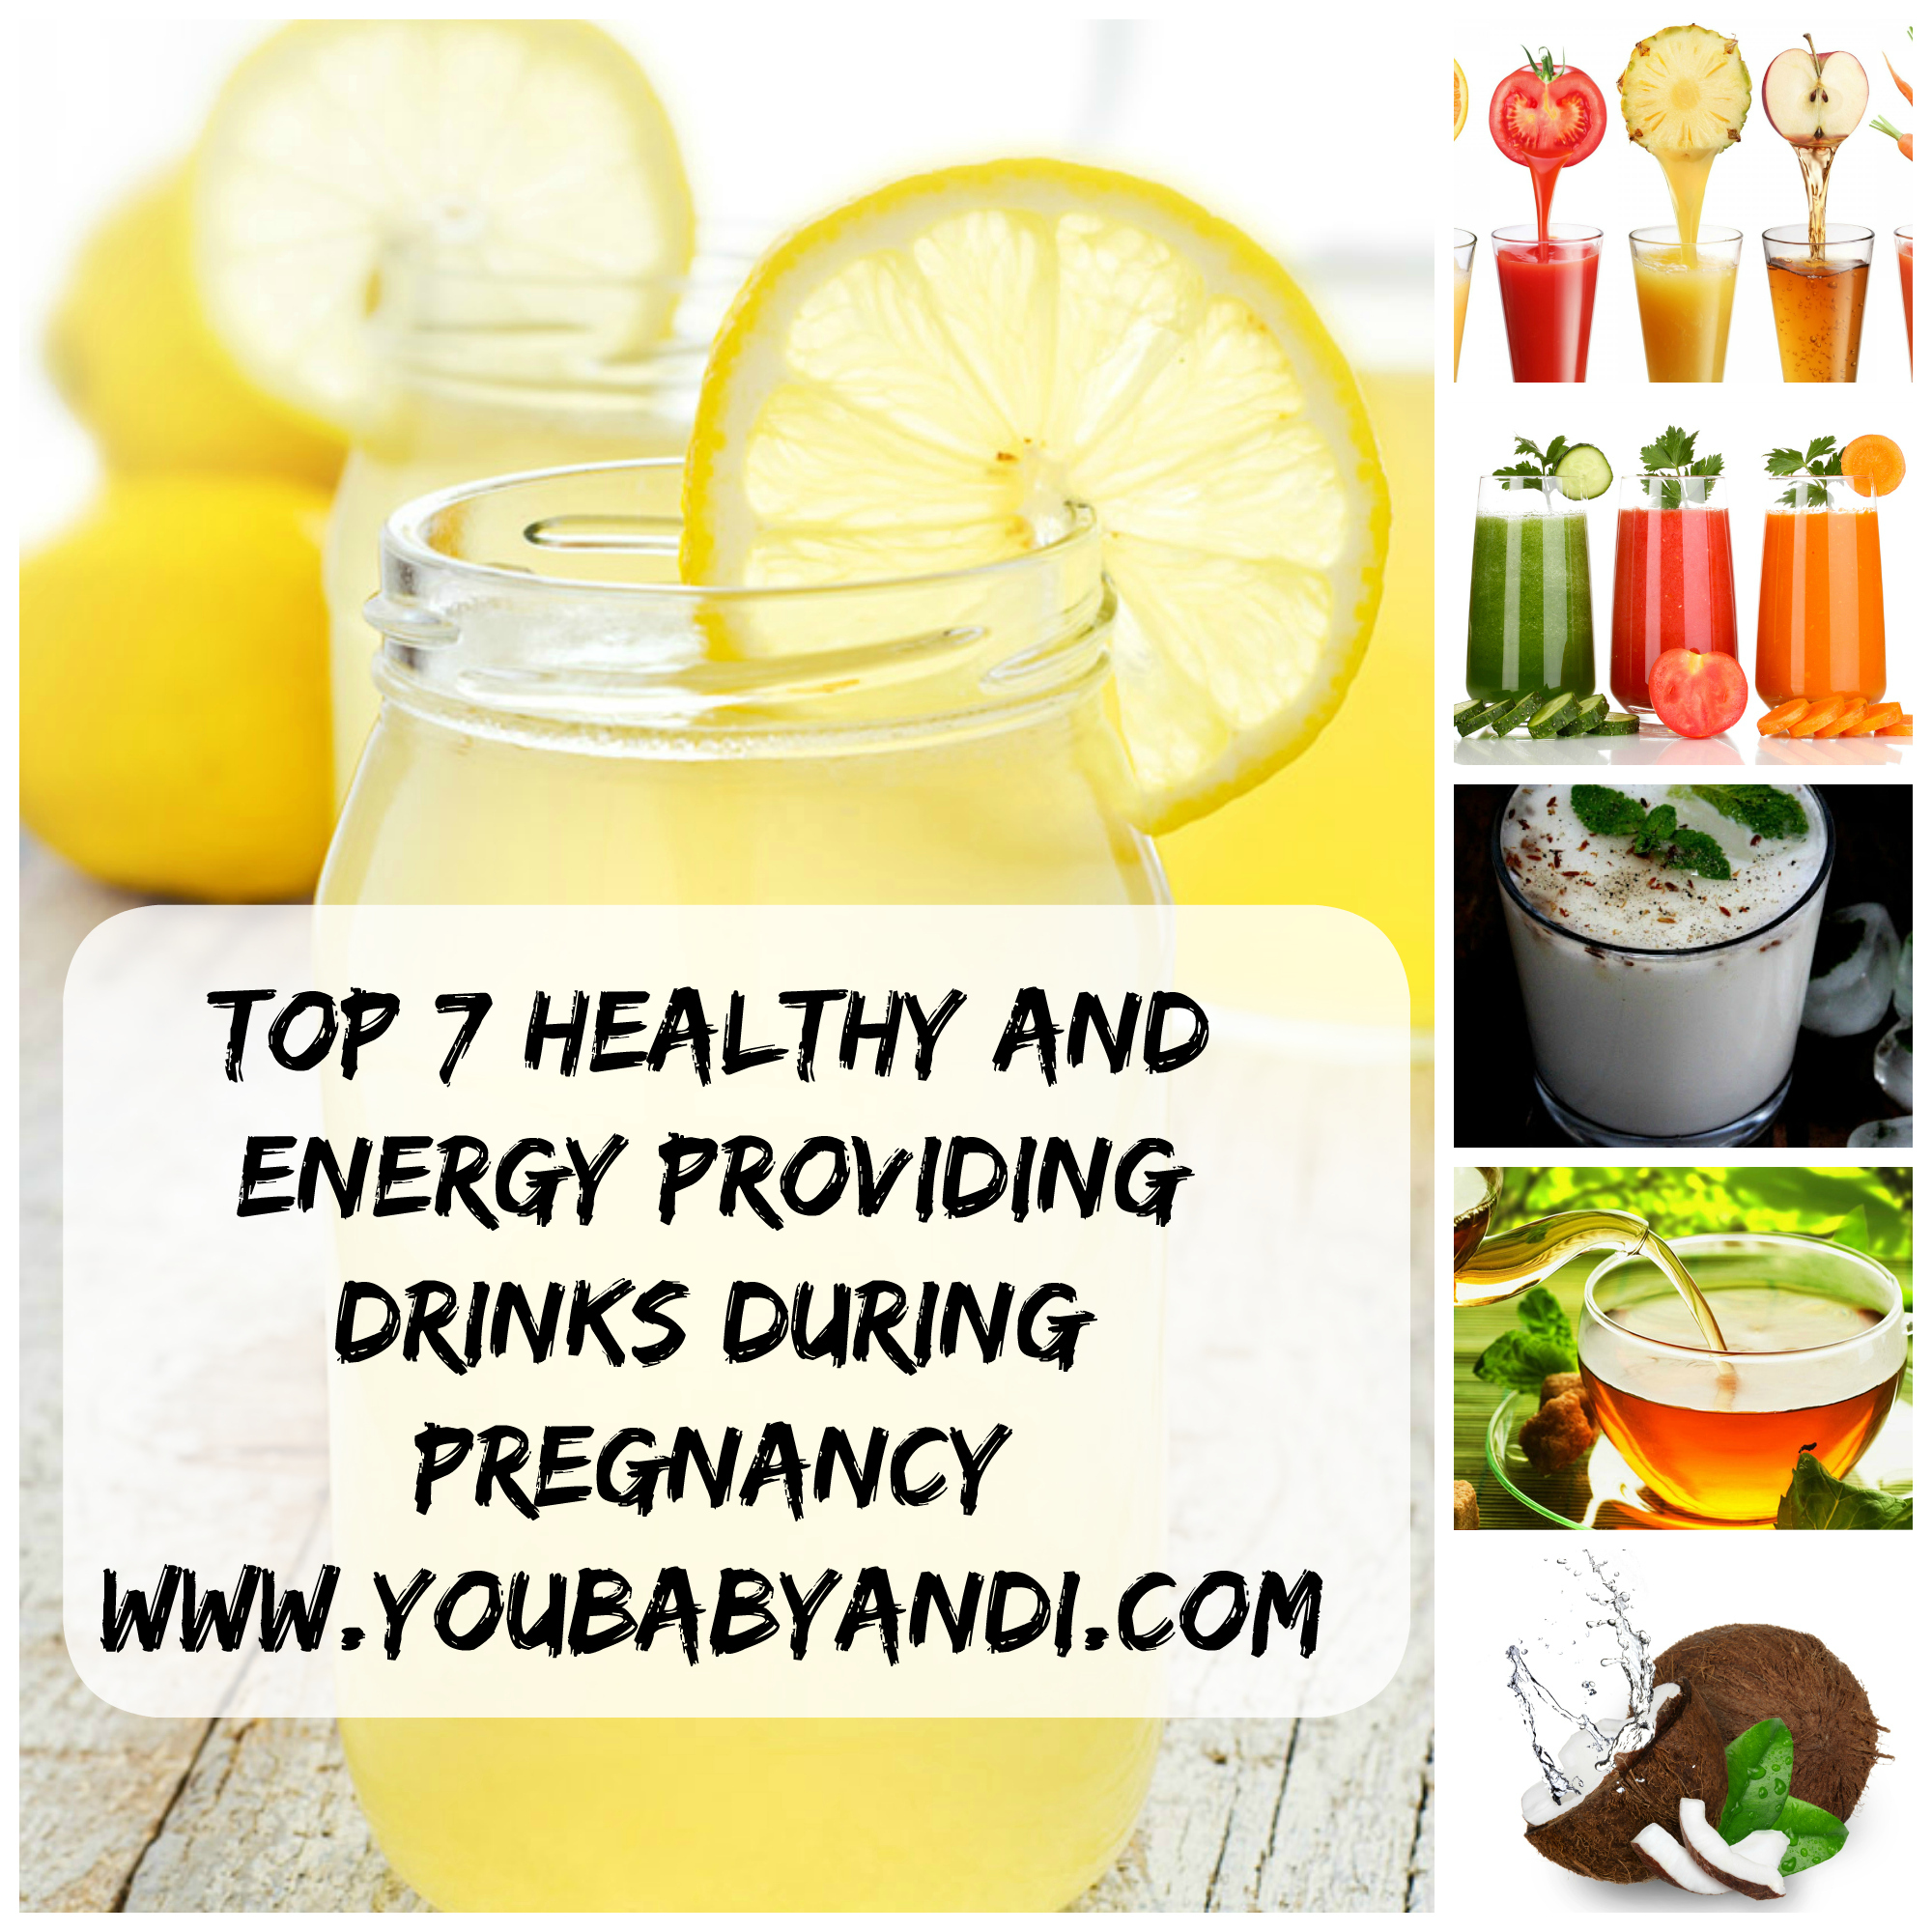 What vitamins drink during pregnancy to be healthy